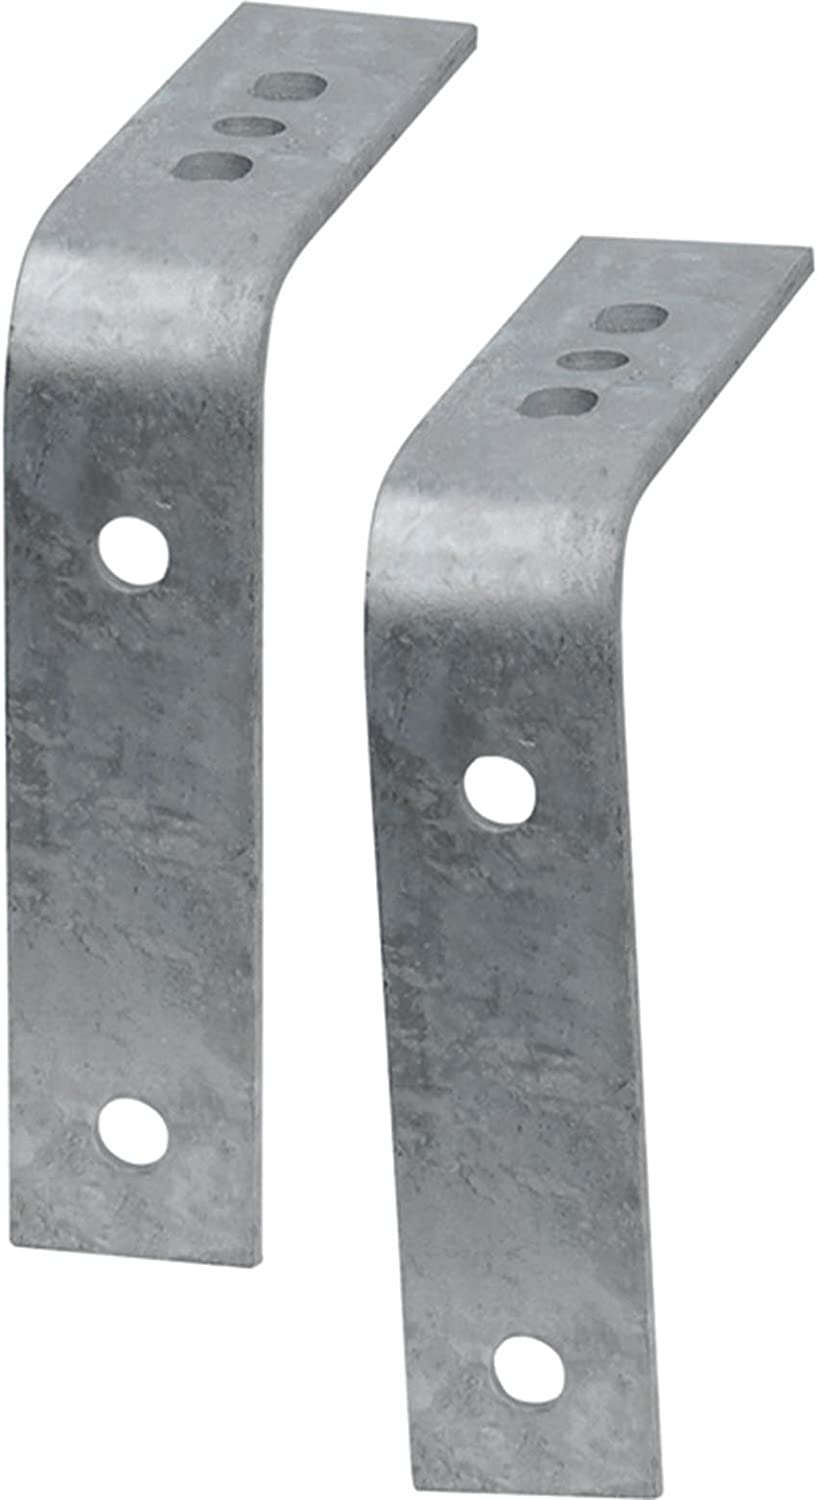 TowZone Fender Mounting Brackets -2-Pack 8in.-12in fits 7in.-8in Wide Fender Tires Model Number 44943